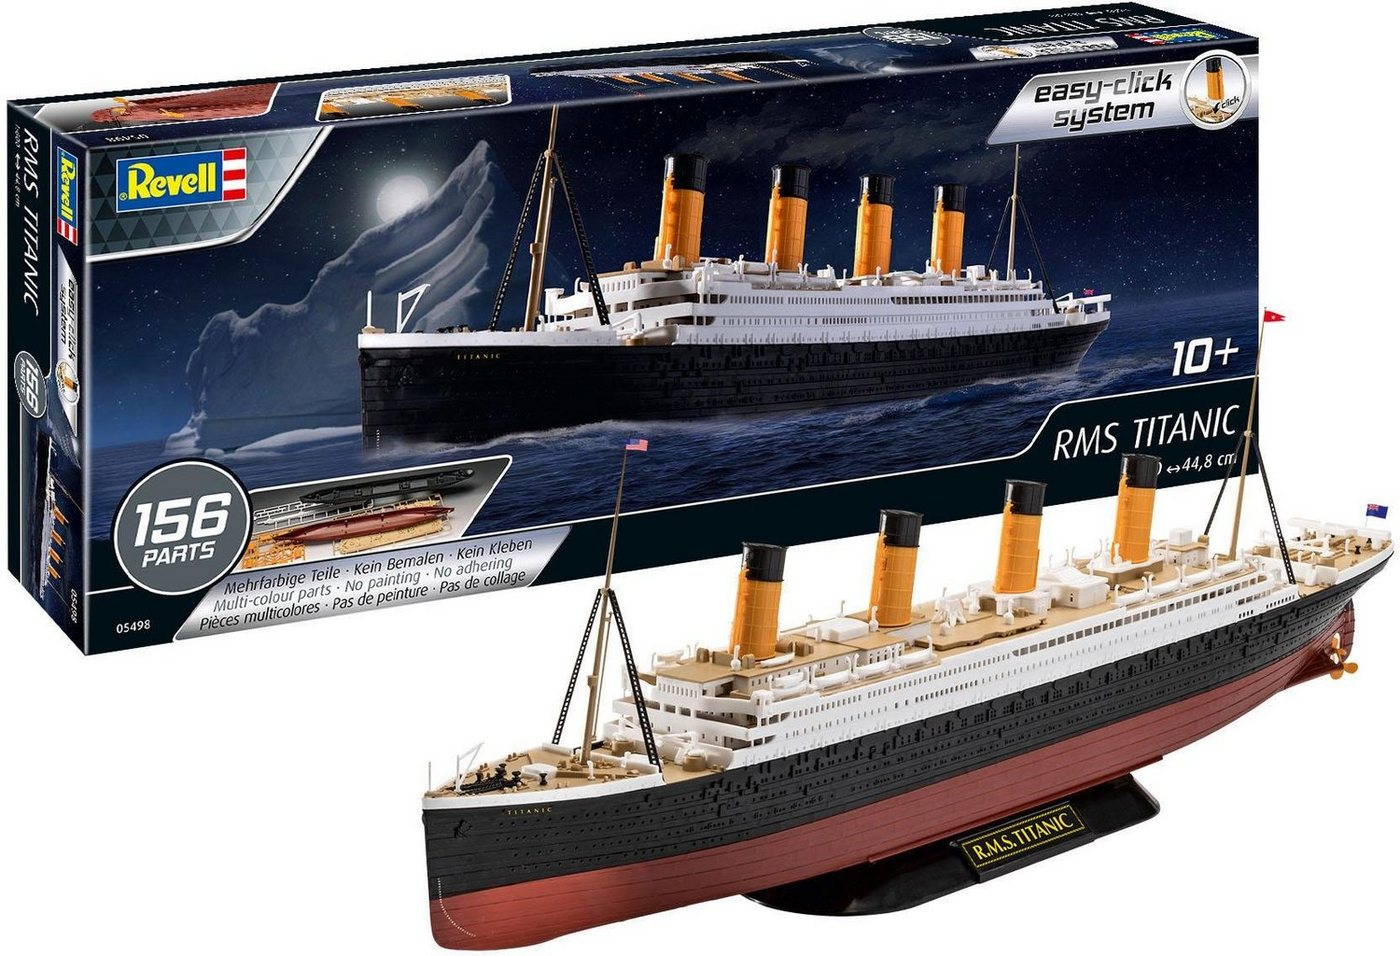 Revell Modellbausatz Schiff, Maßstab 1:600, »RMS TITANIC, easy-click-system«